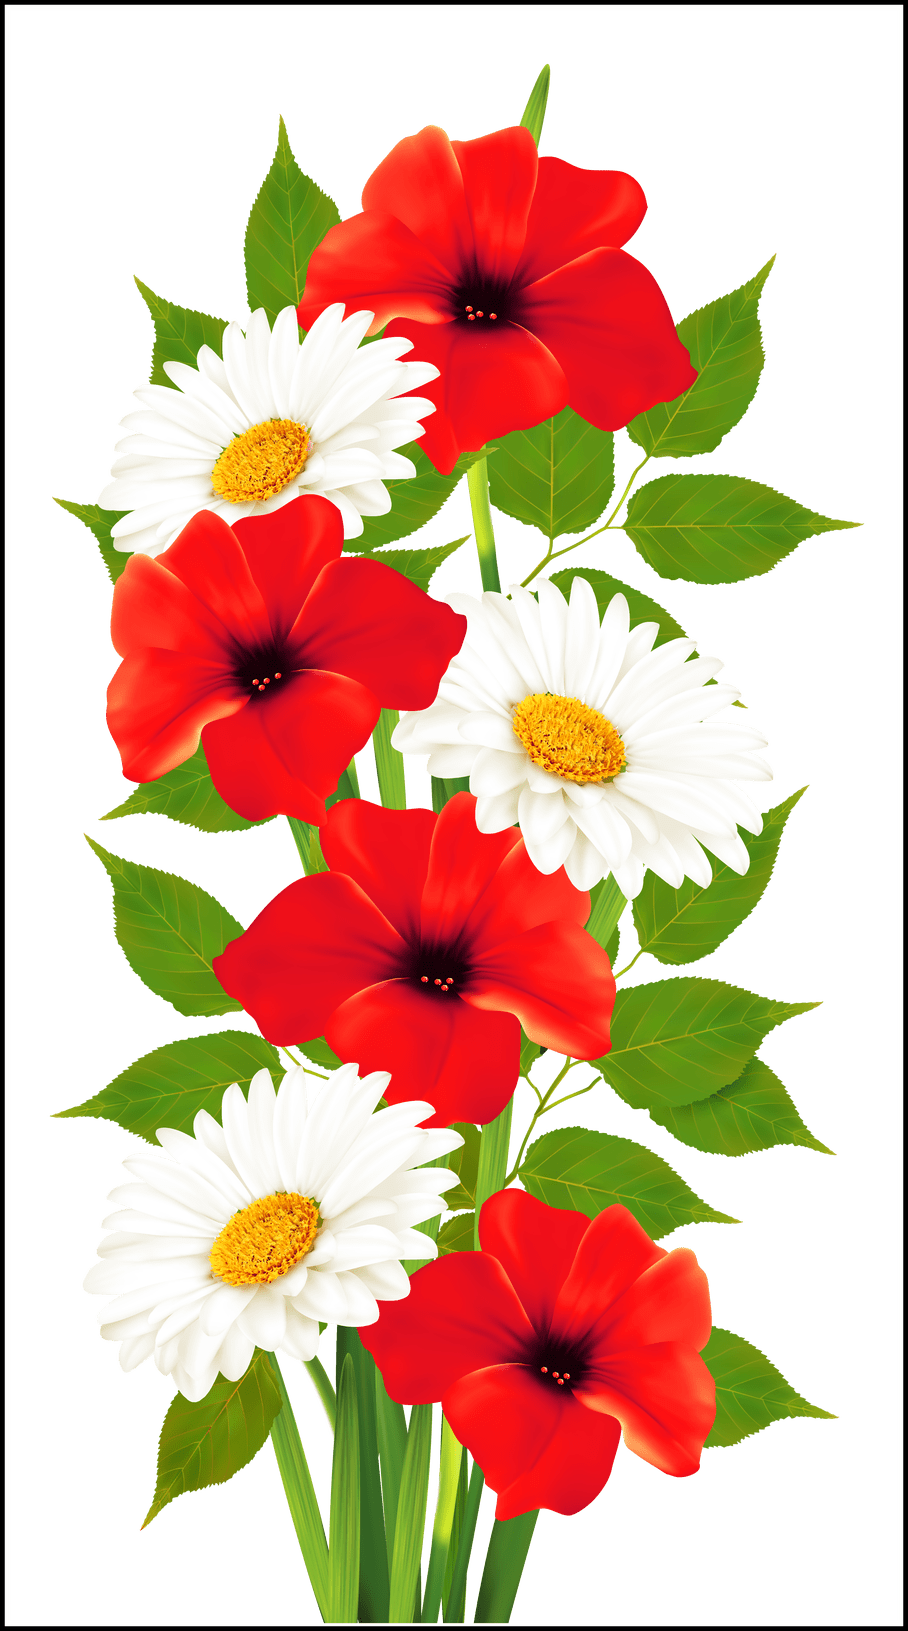 Poppy clipart poppy appeal. Stunning poppies and daisies